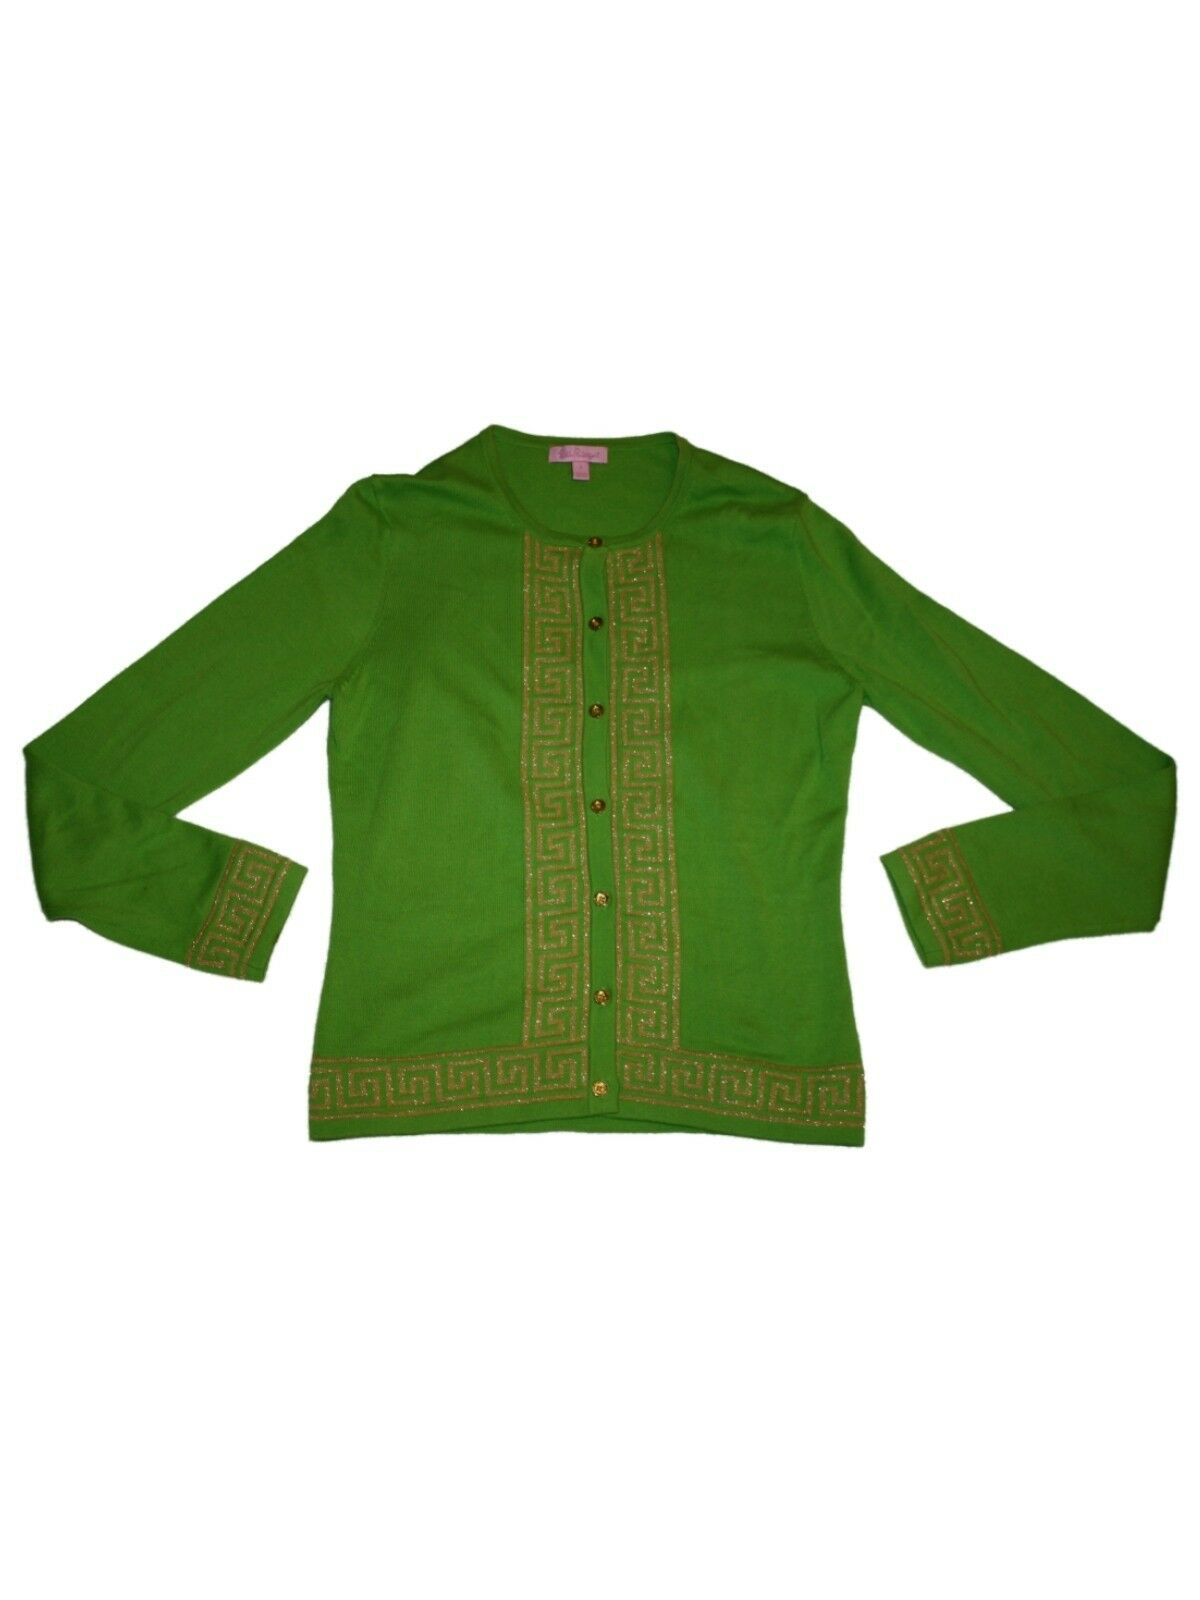 Women Lilly Pulitzer Lime Green gold gold gold Cotton Cardigan Sweater Fall Winter Size S 1172ae